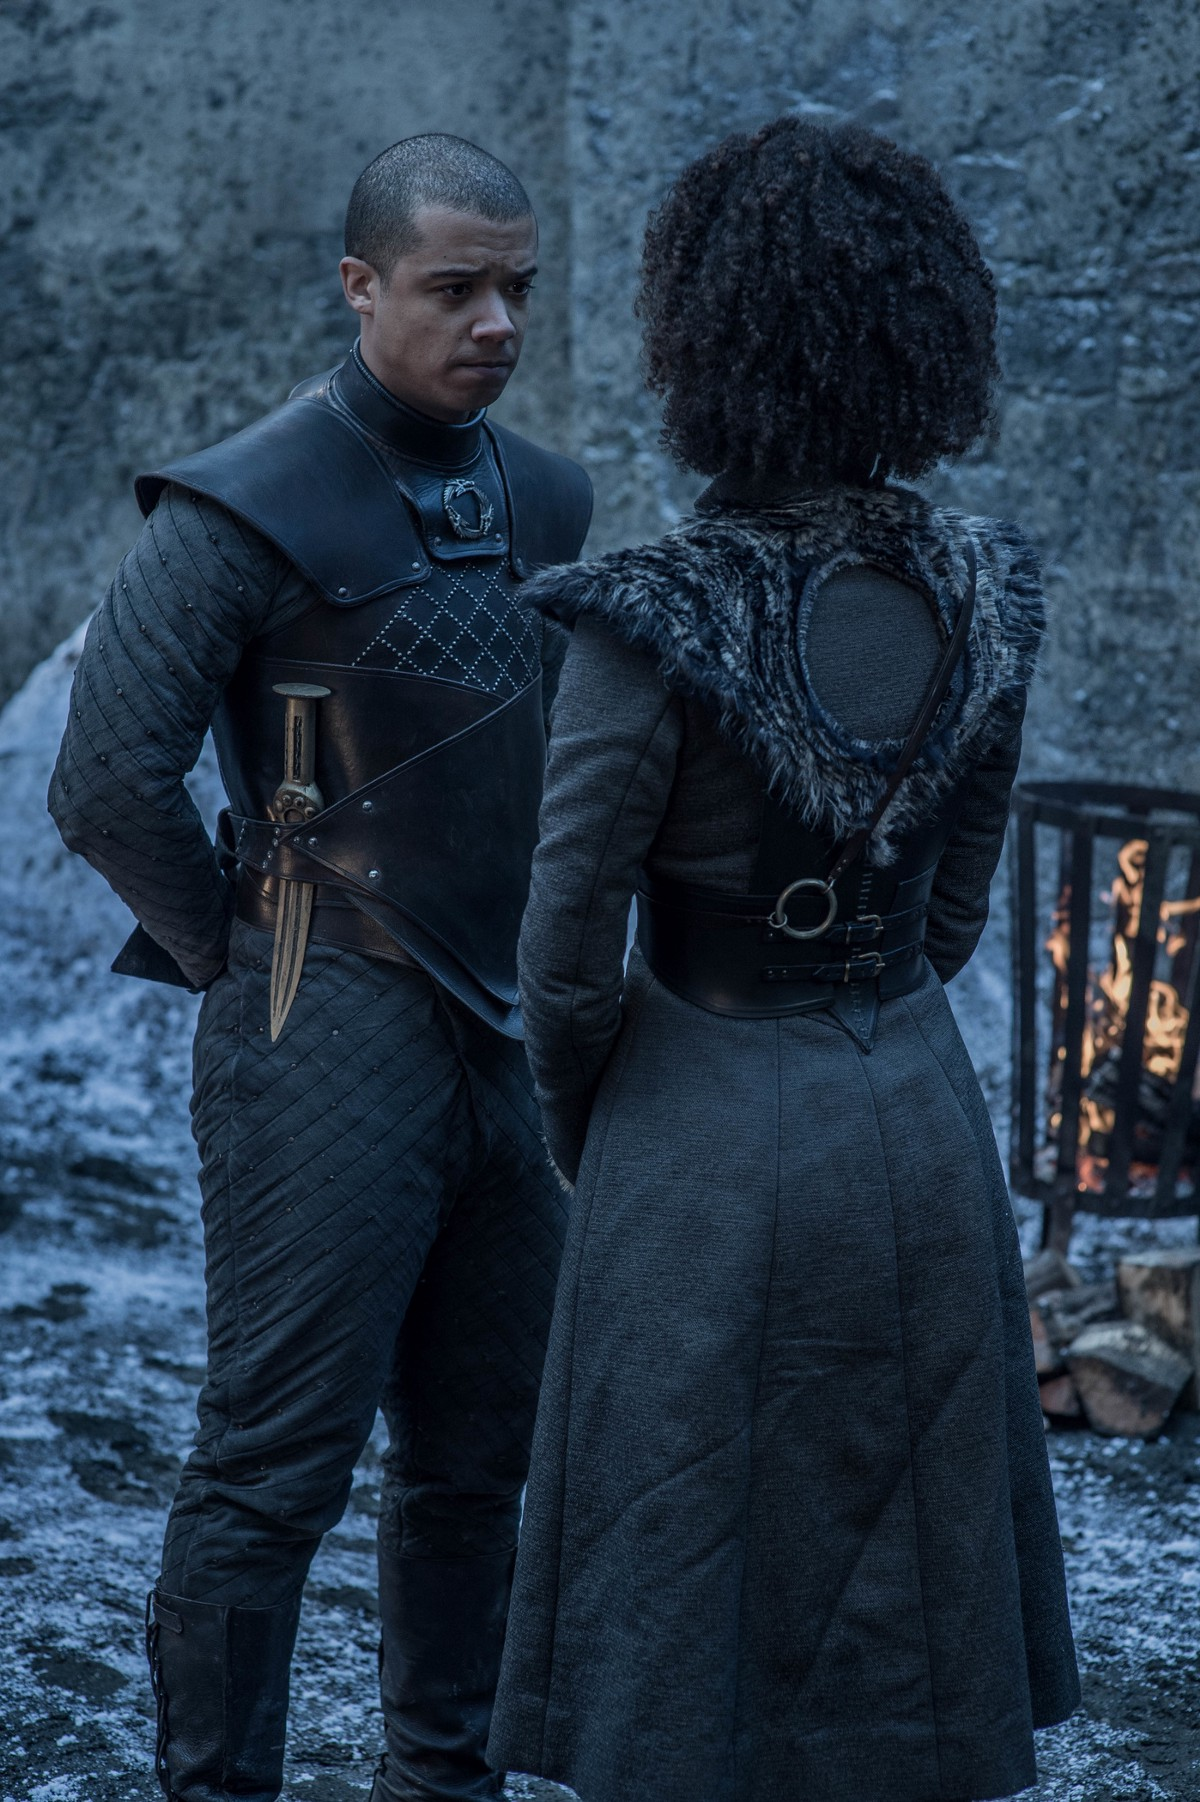 REVIEW: 'Game of Thrones' Season 8, Episode 2 A Knight of the Seven Kingdoms